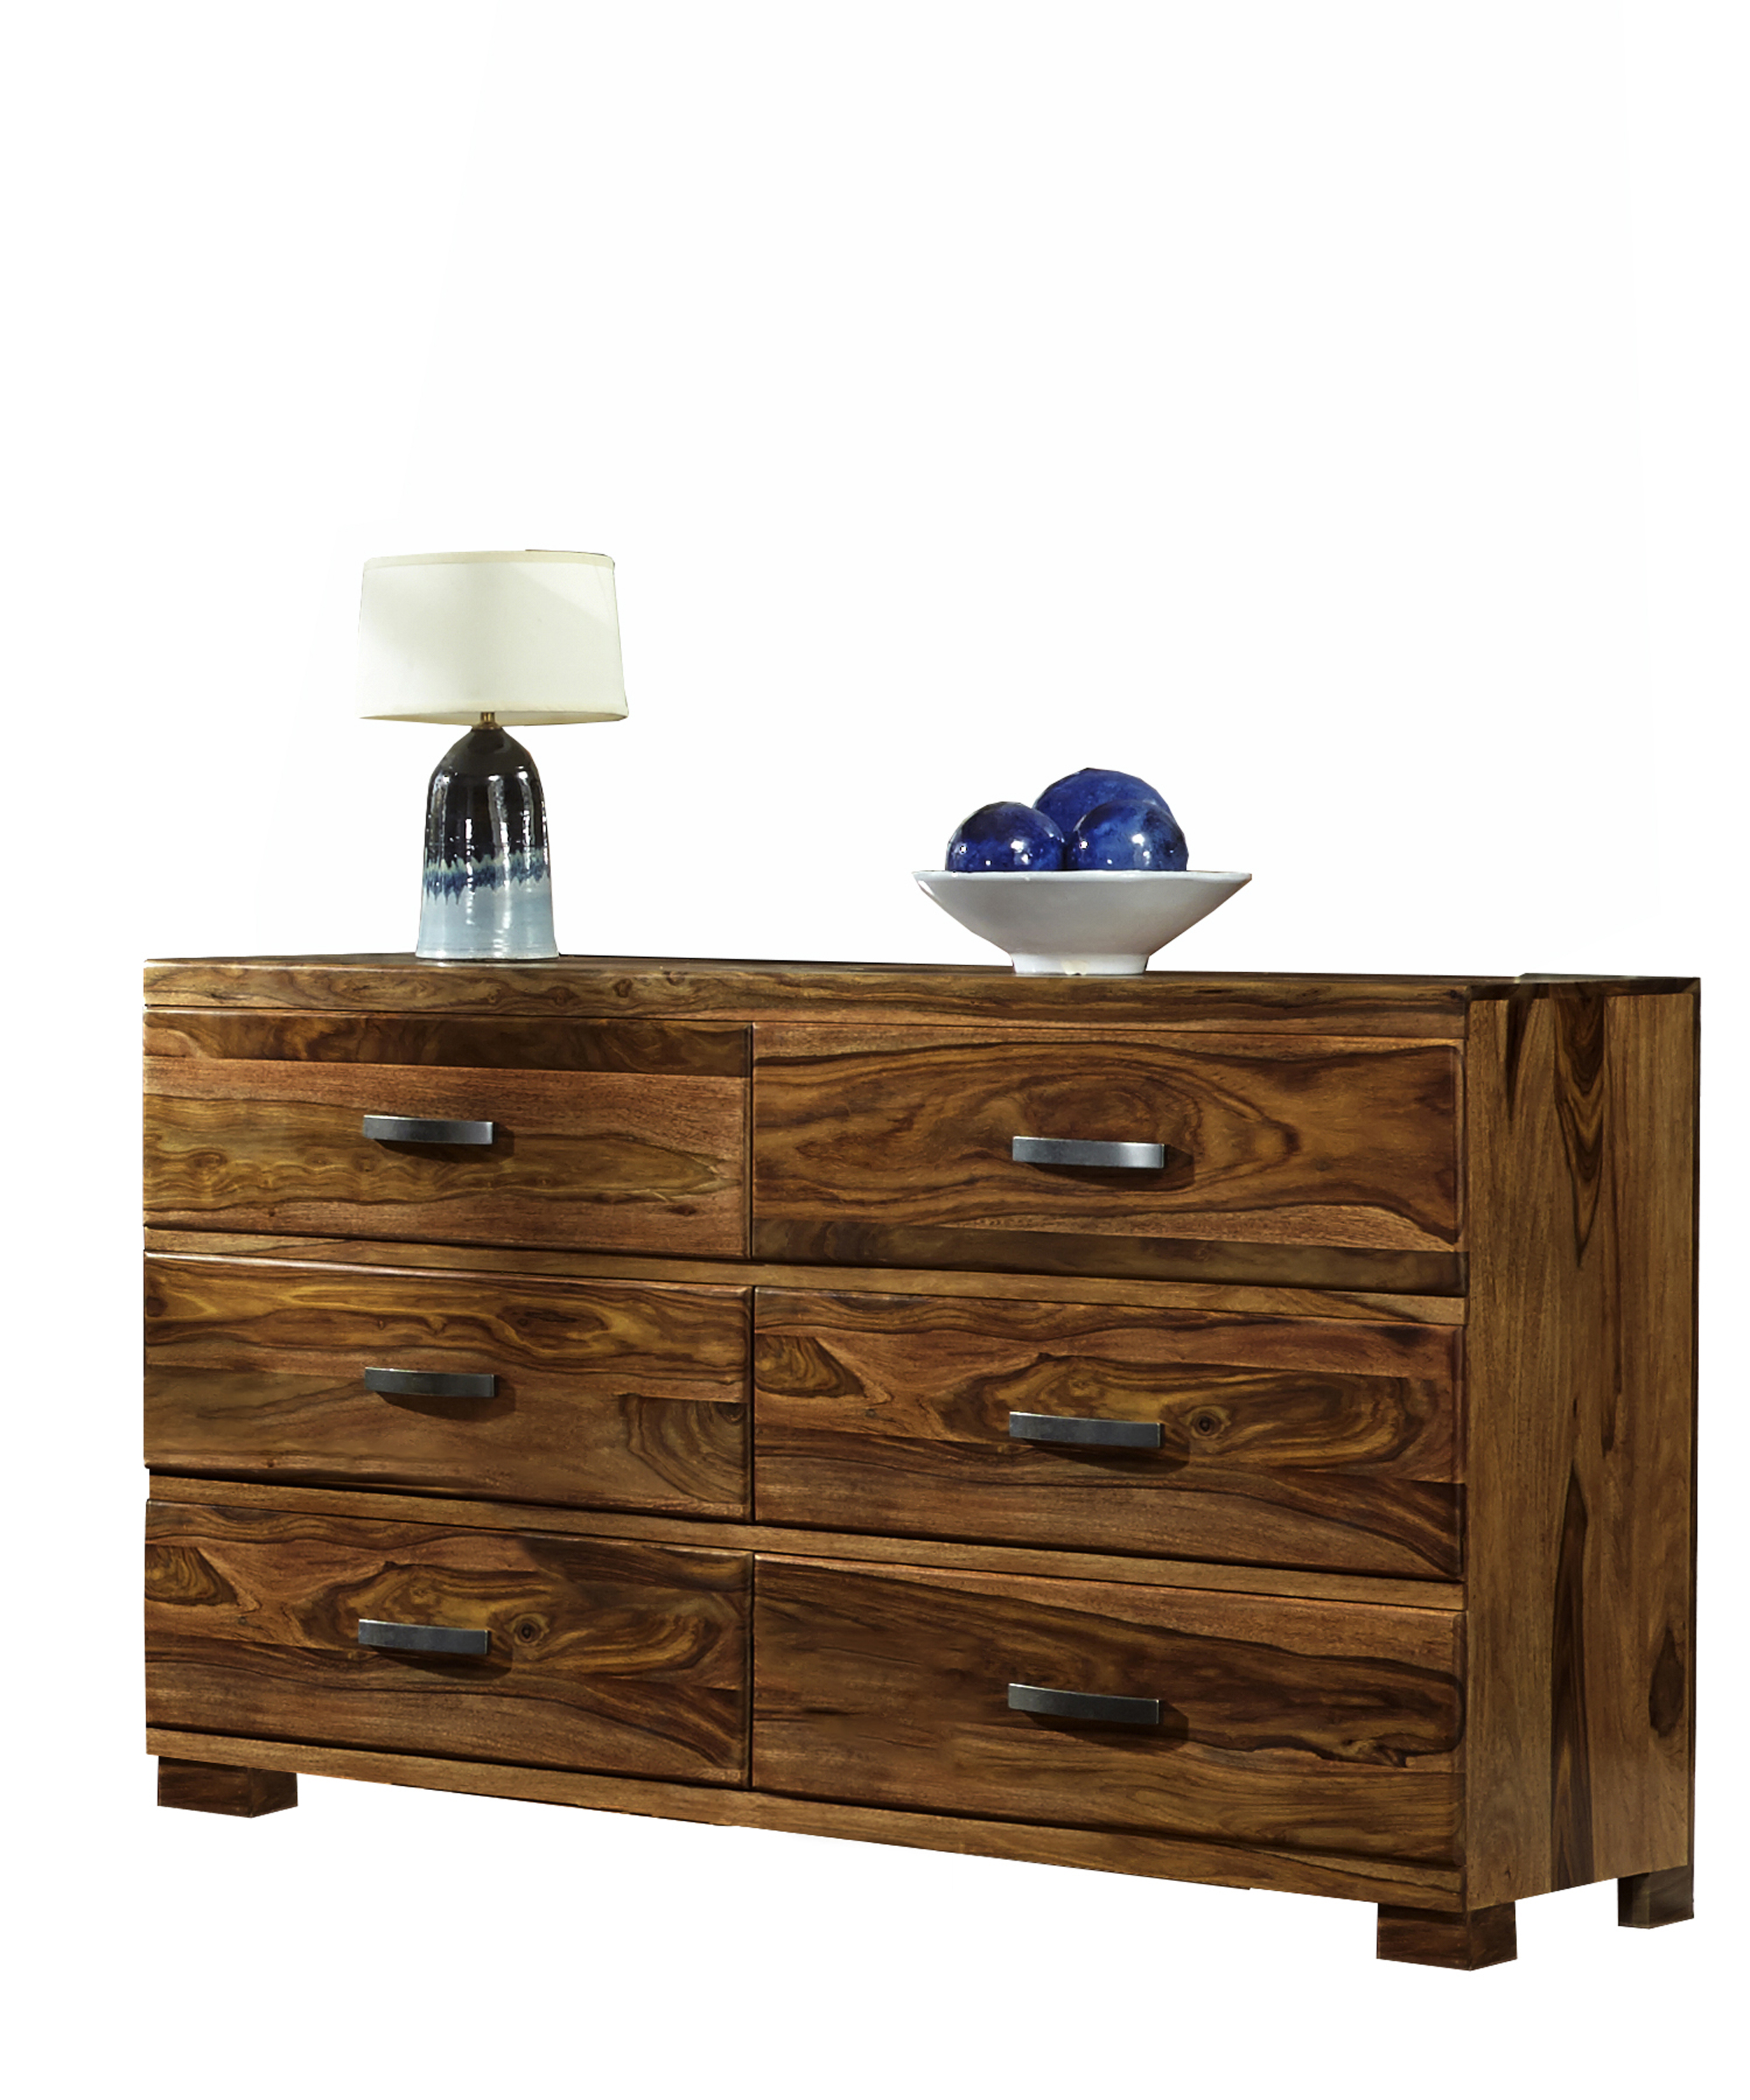 Hillsdale Madera Dresser with 6 Drawers - Item Number: 1406-717